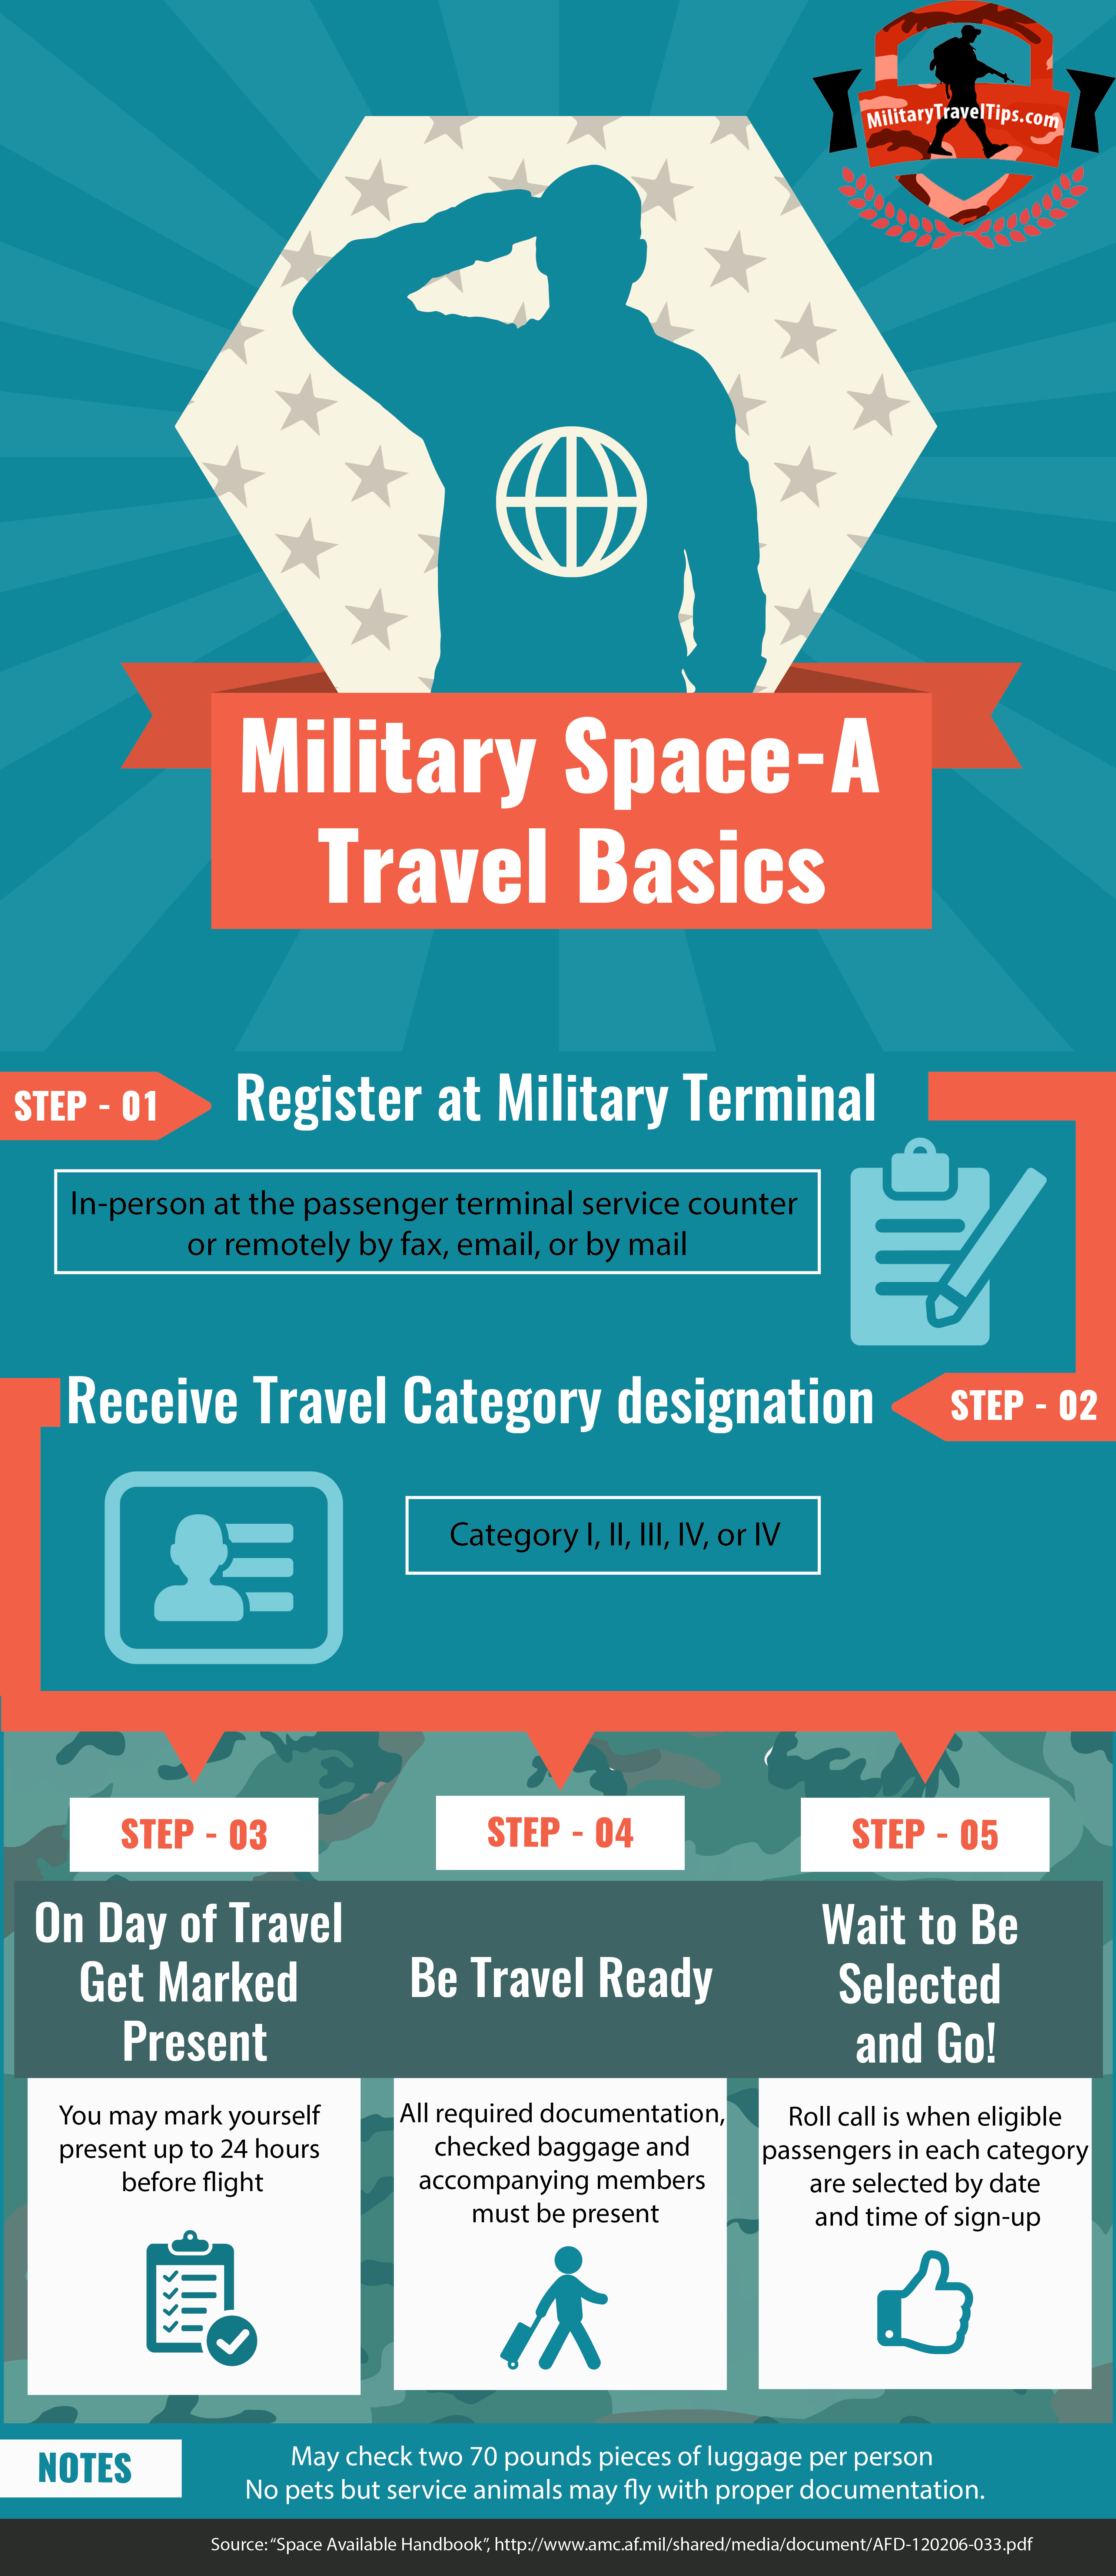 Travel Free with Military Space-A Flying |